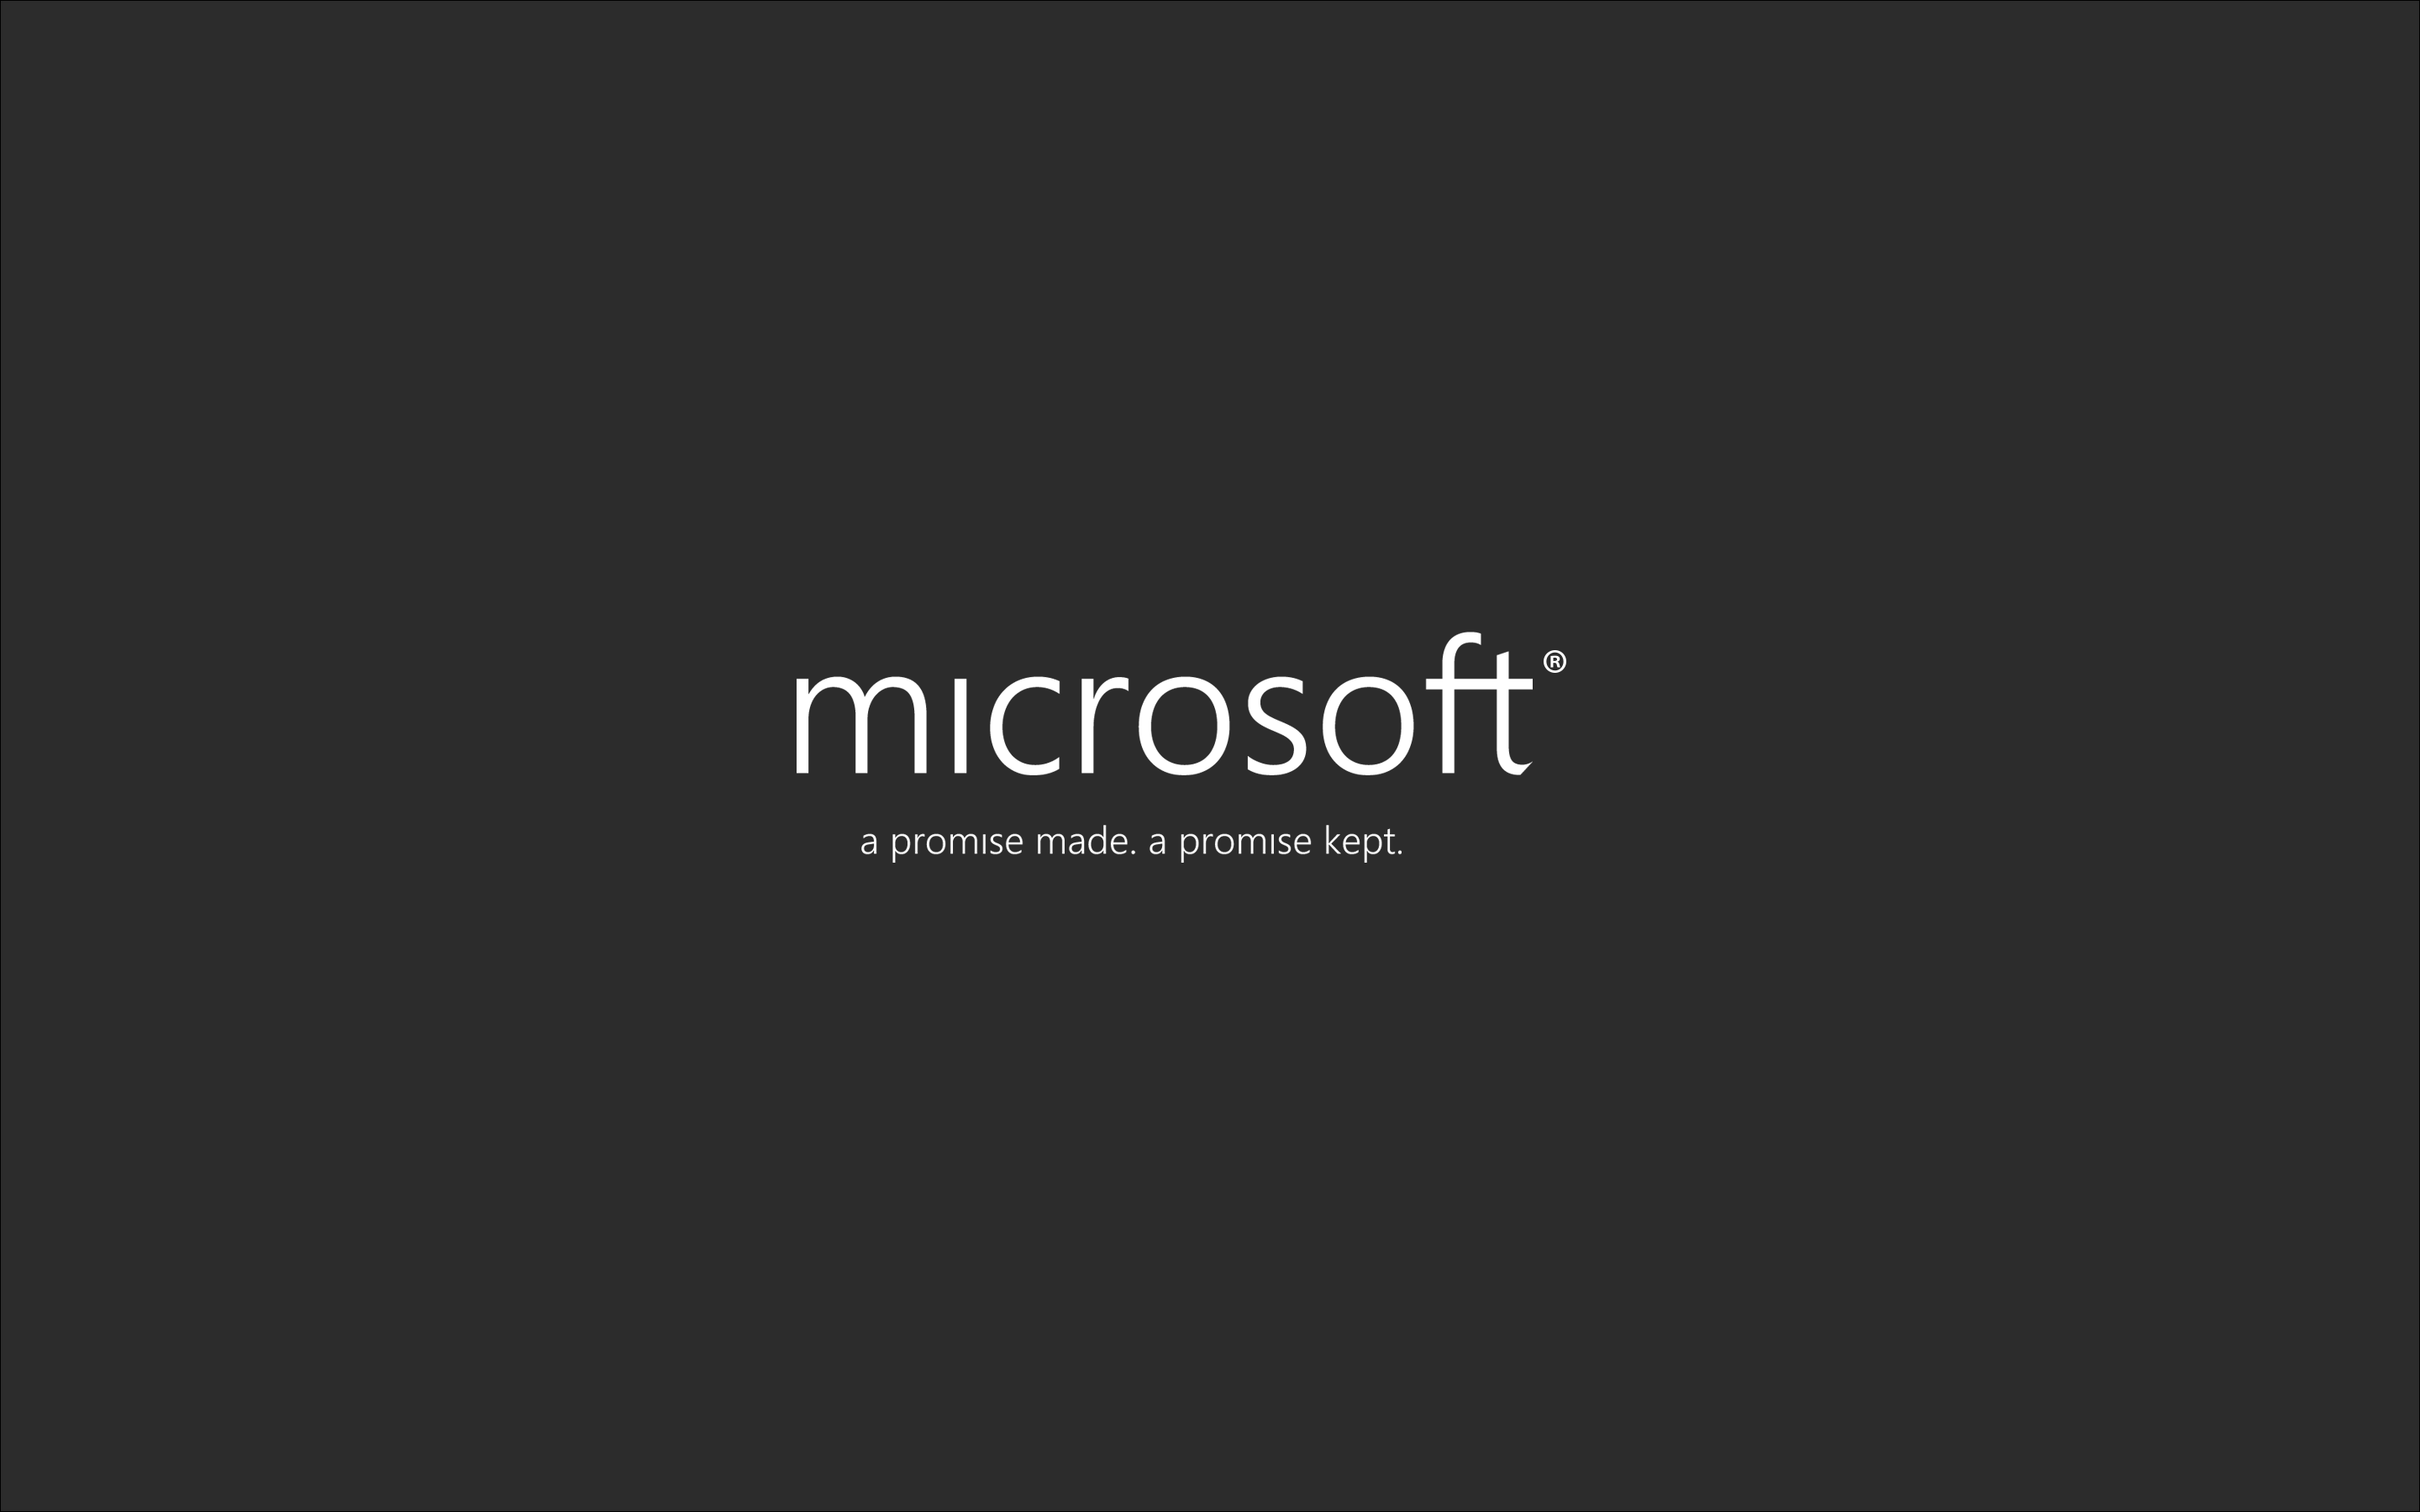 Microsoft Wallpaper by Brebenel-Silviu